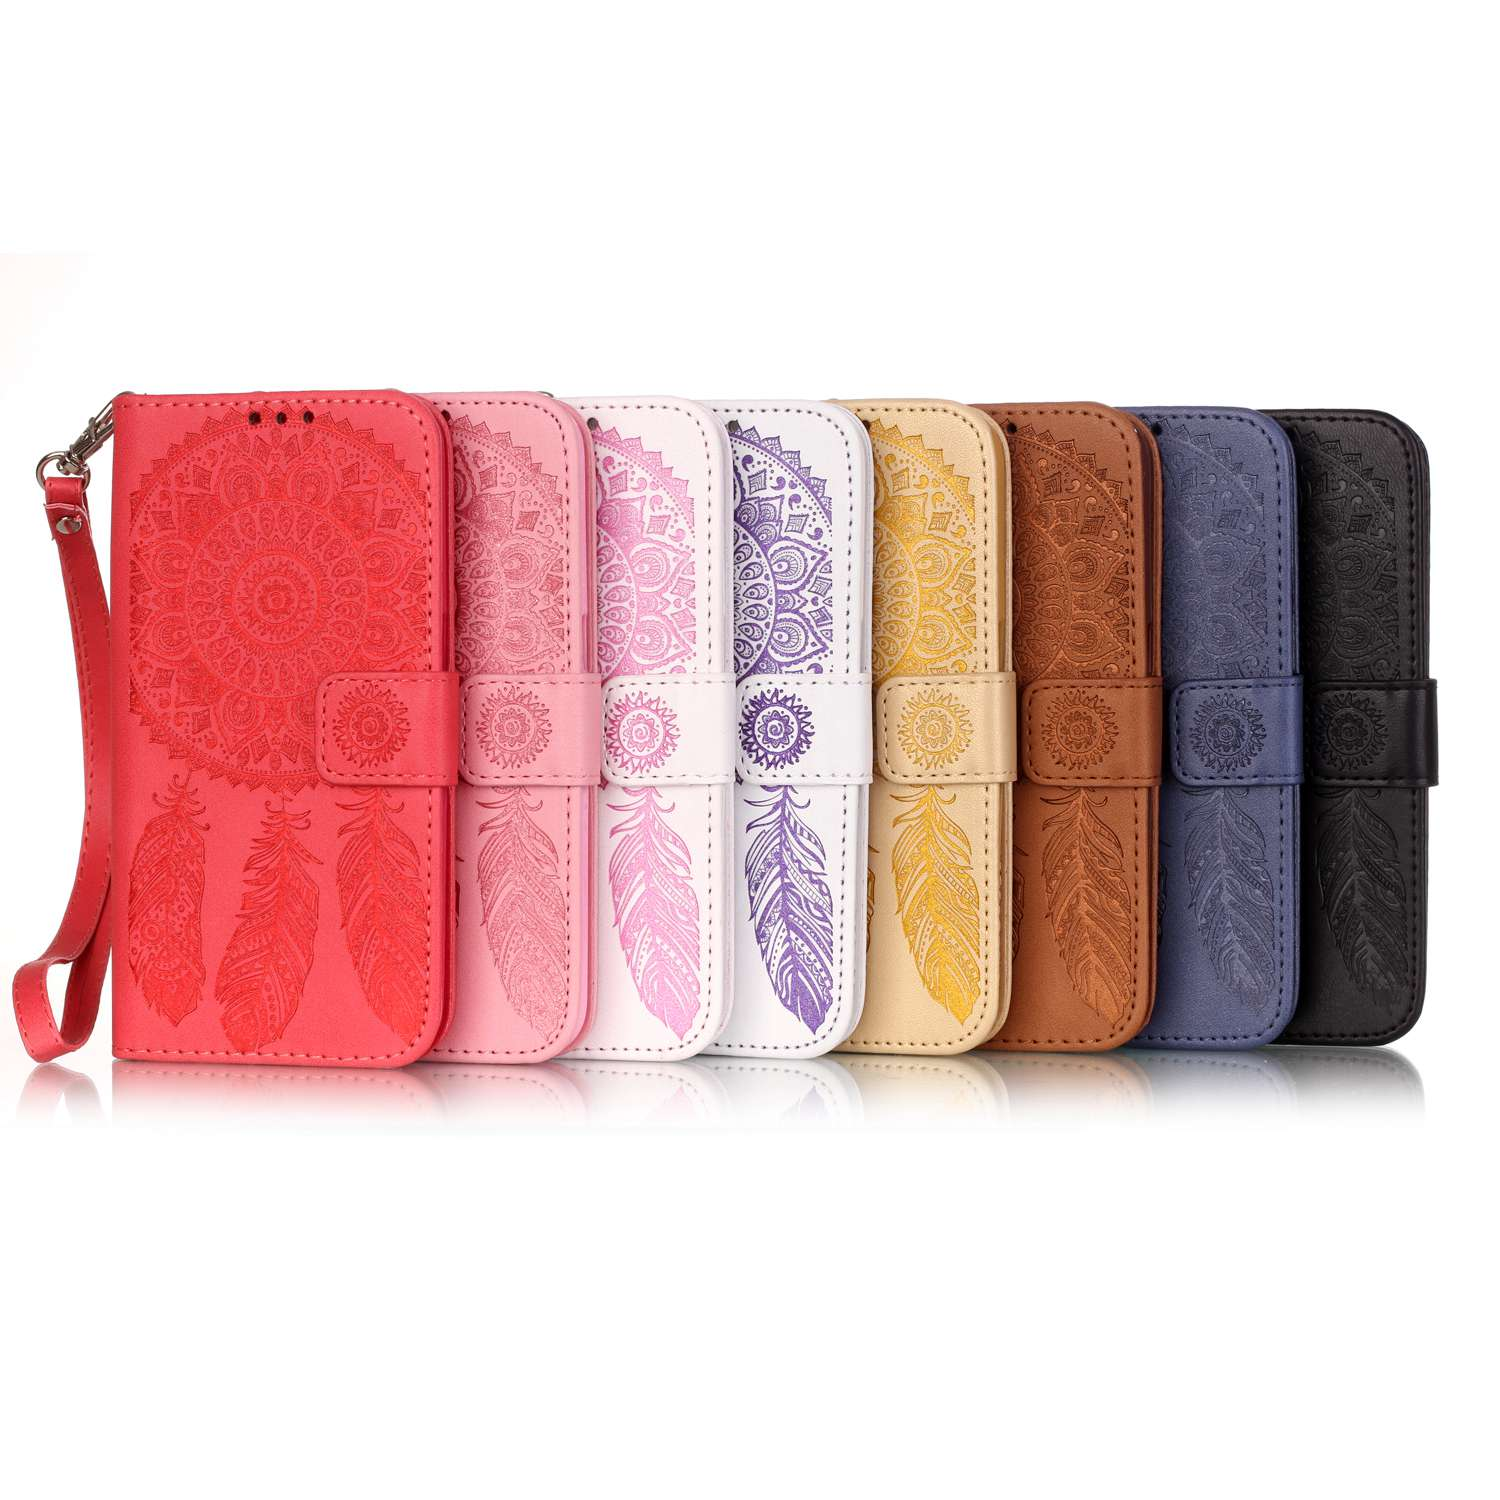 For Samsung Galaxy S7 Case Cover G9300 G930F Phone FlipCase Wallet Embossed Wind Chime Fundas Coque Leather BookCase Accessories(China (Mainland))